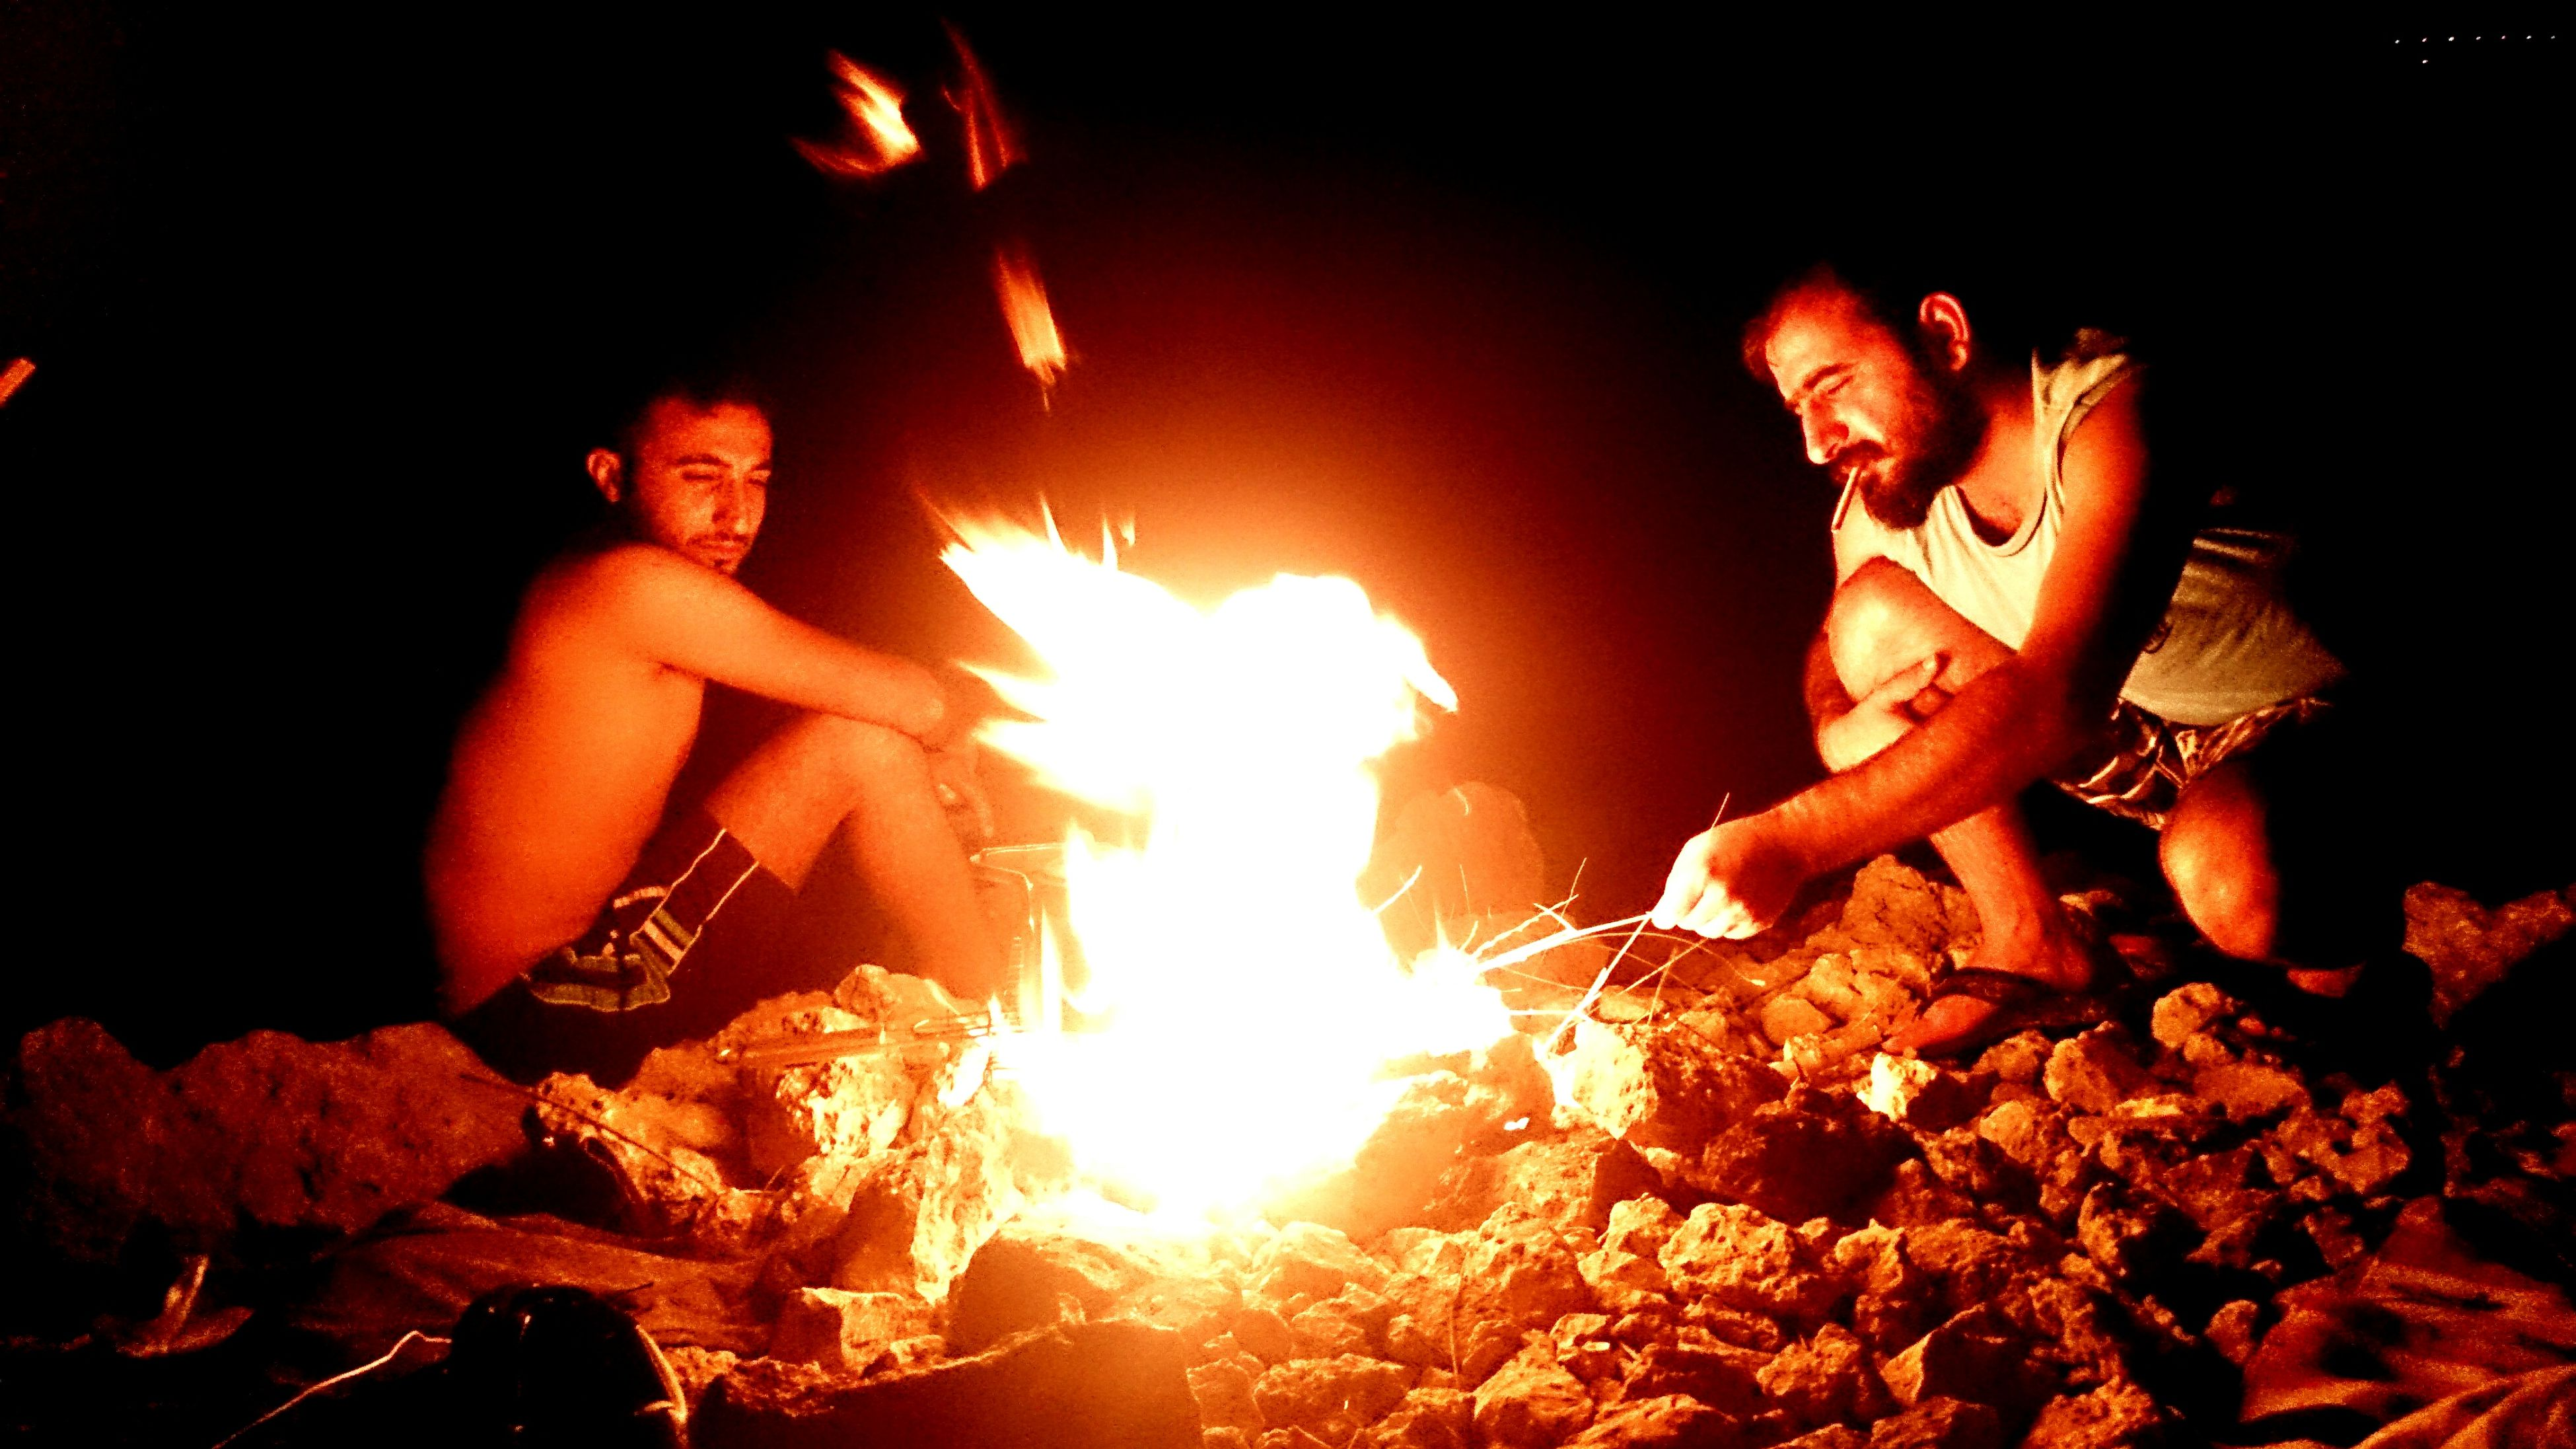 burning, night, flame, fire - natural phenomenon, heat - temperature, glowing, orange color, fire, bonfire, lifestyles, leisure activity, holding, illuminated, outdoors, standing, dark, campfire, person